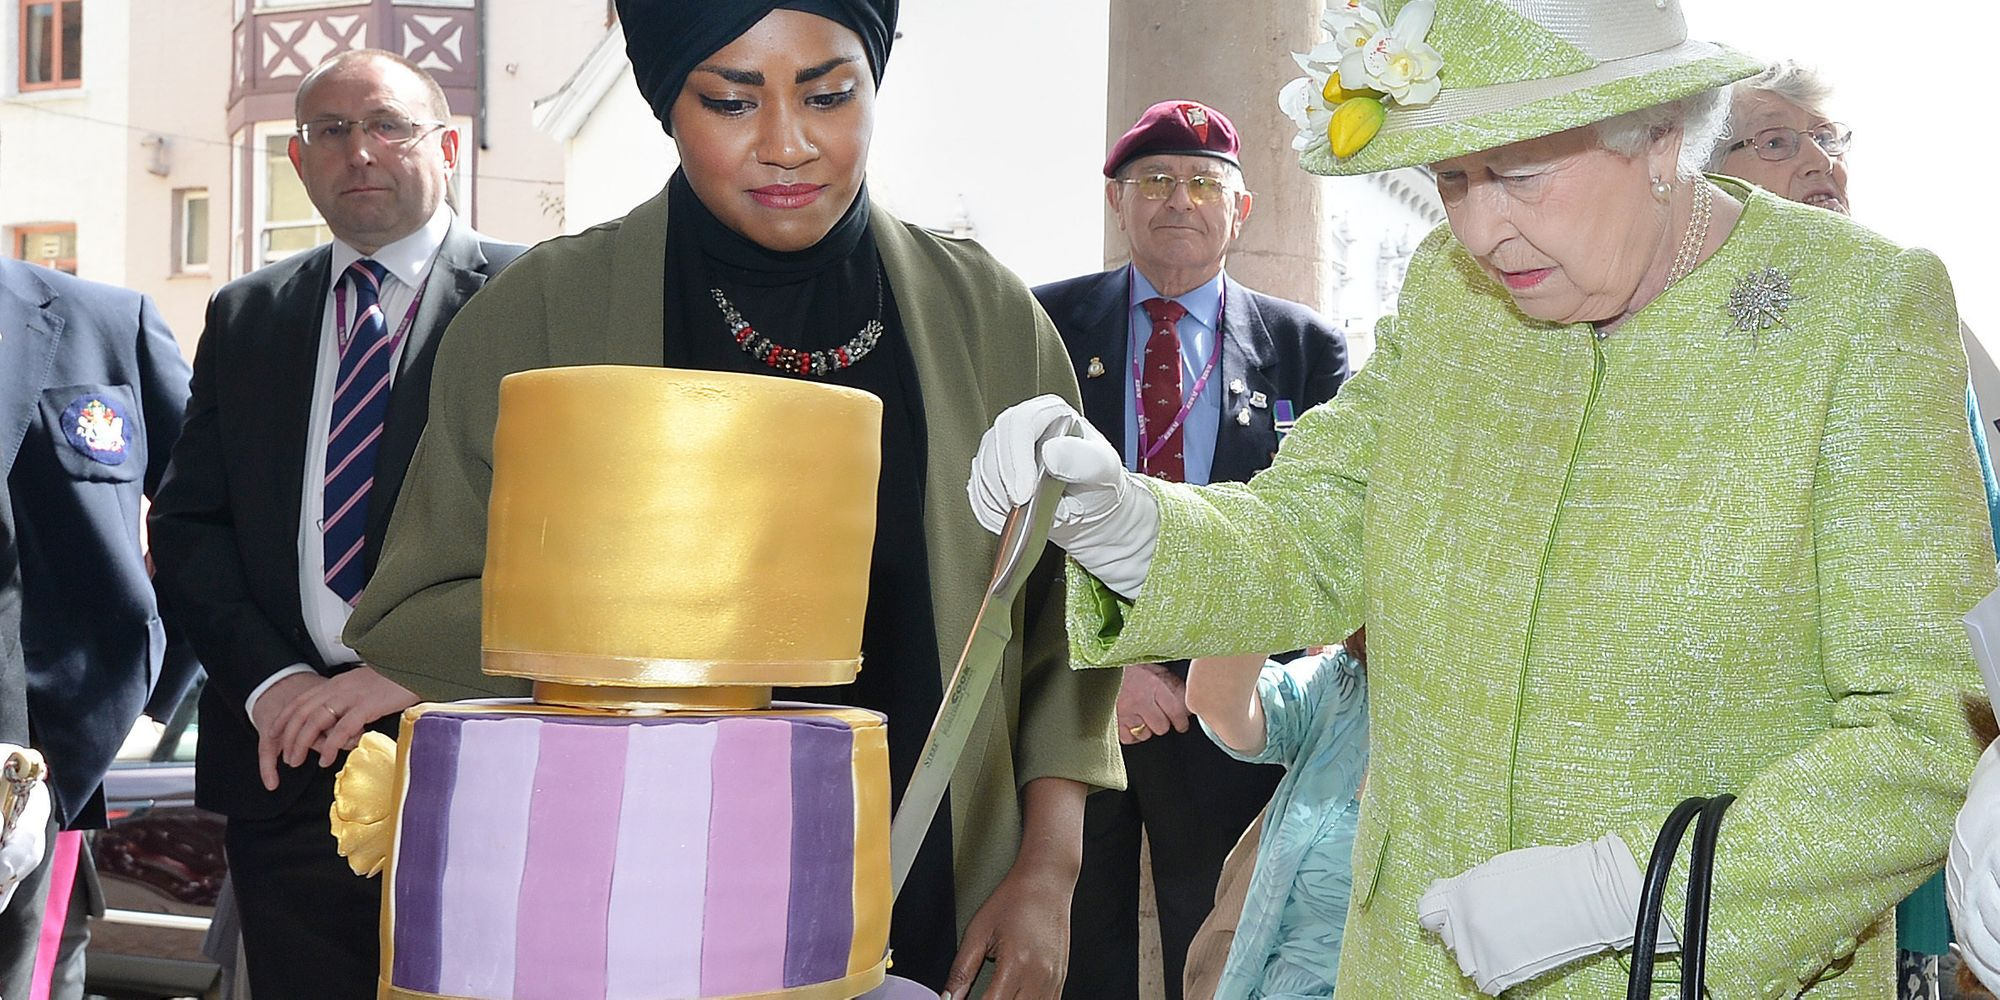 The Queen S 90th Birthday Nadiya Hussain Of Great